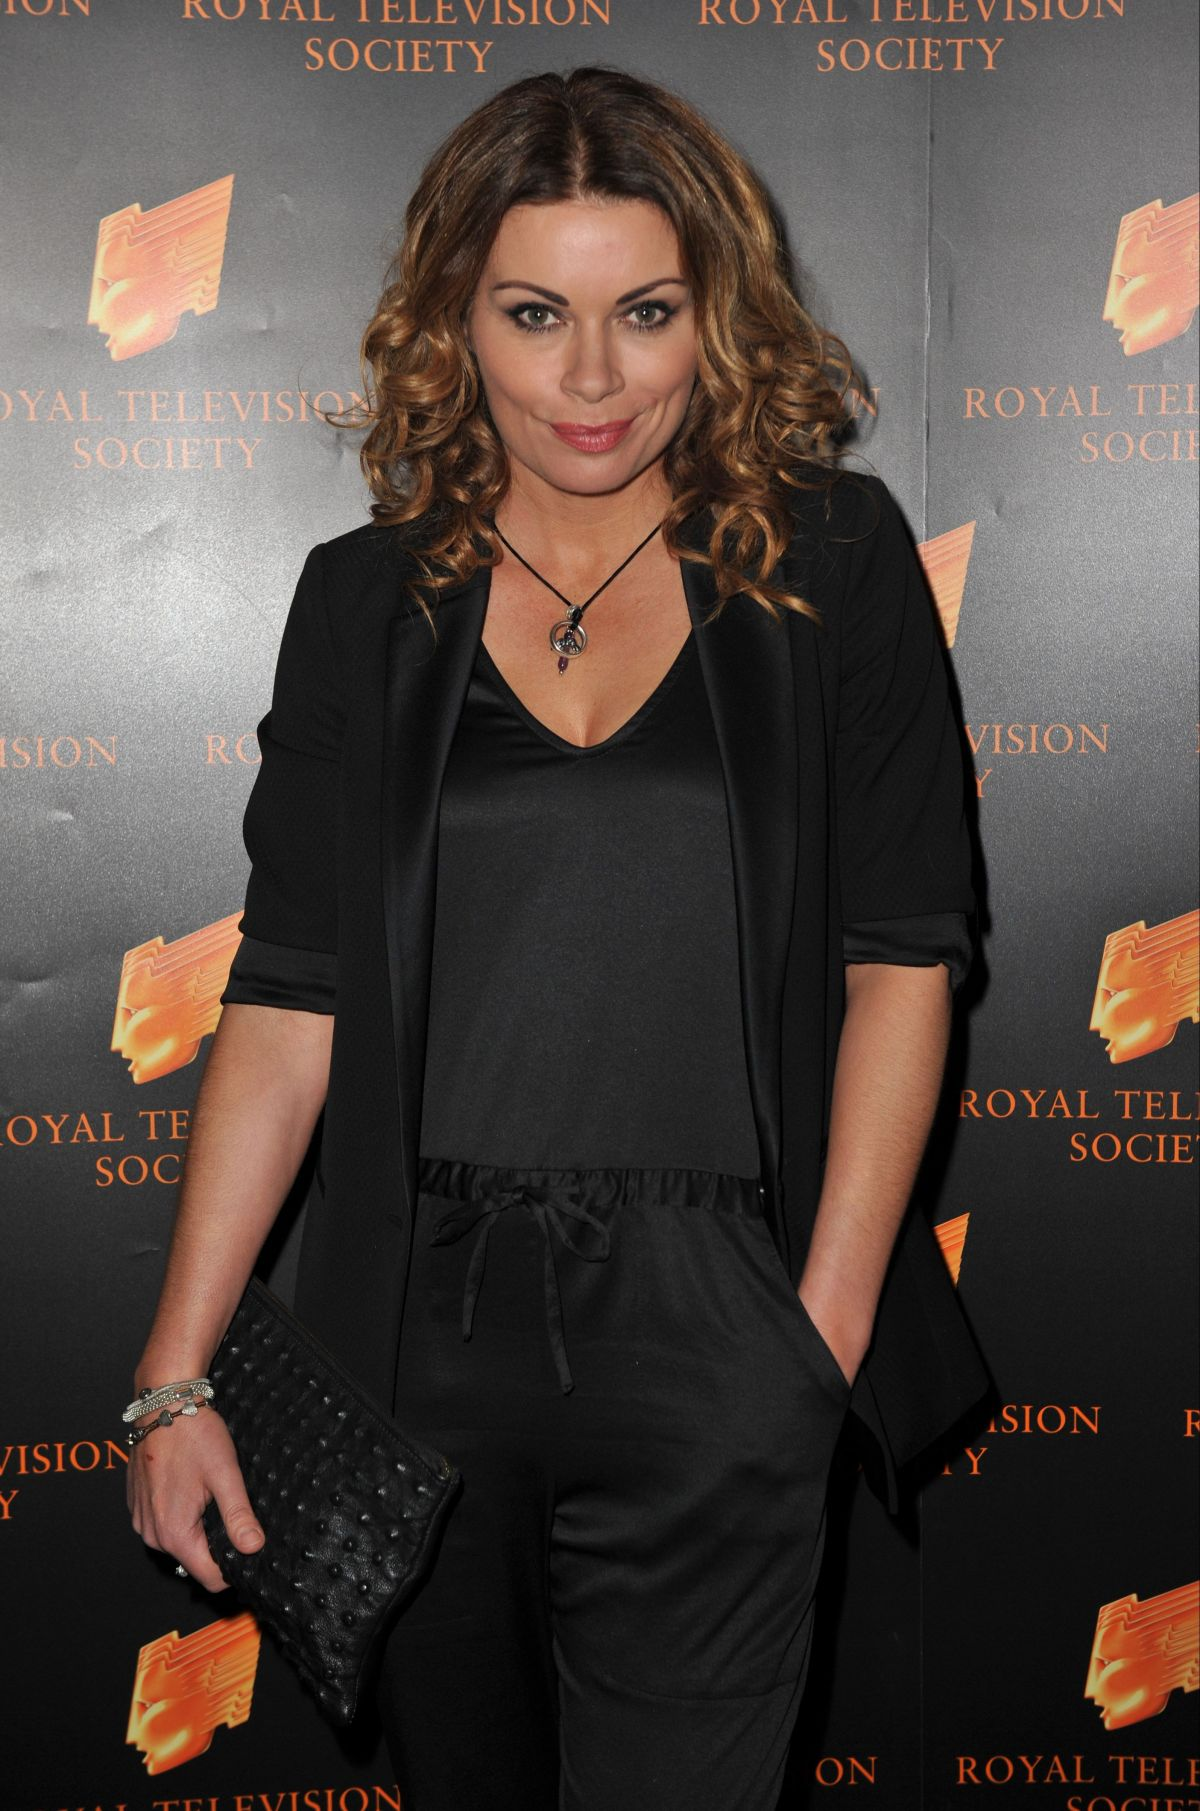 ALISON KING at RTS Awards 2015 in Manchester